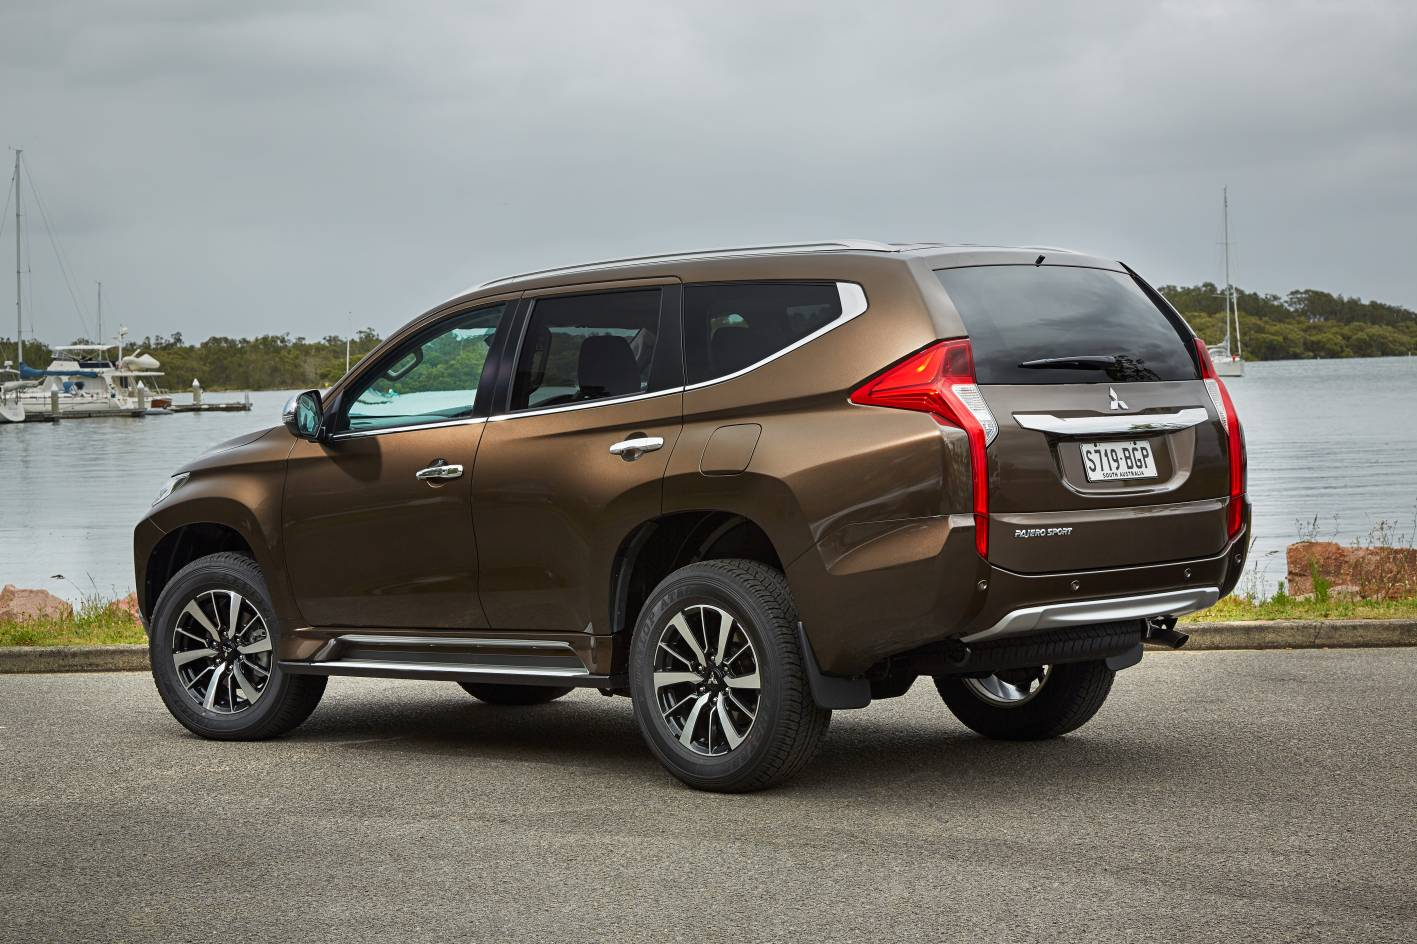 Mitsubishi Cars News All New Pajero Sport Launched From